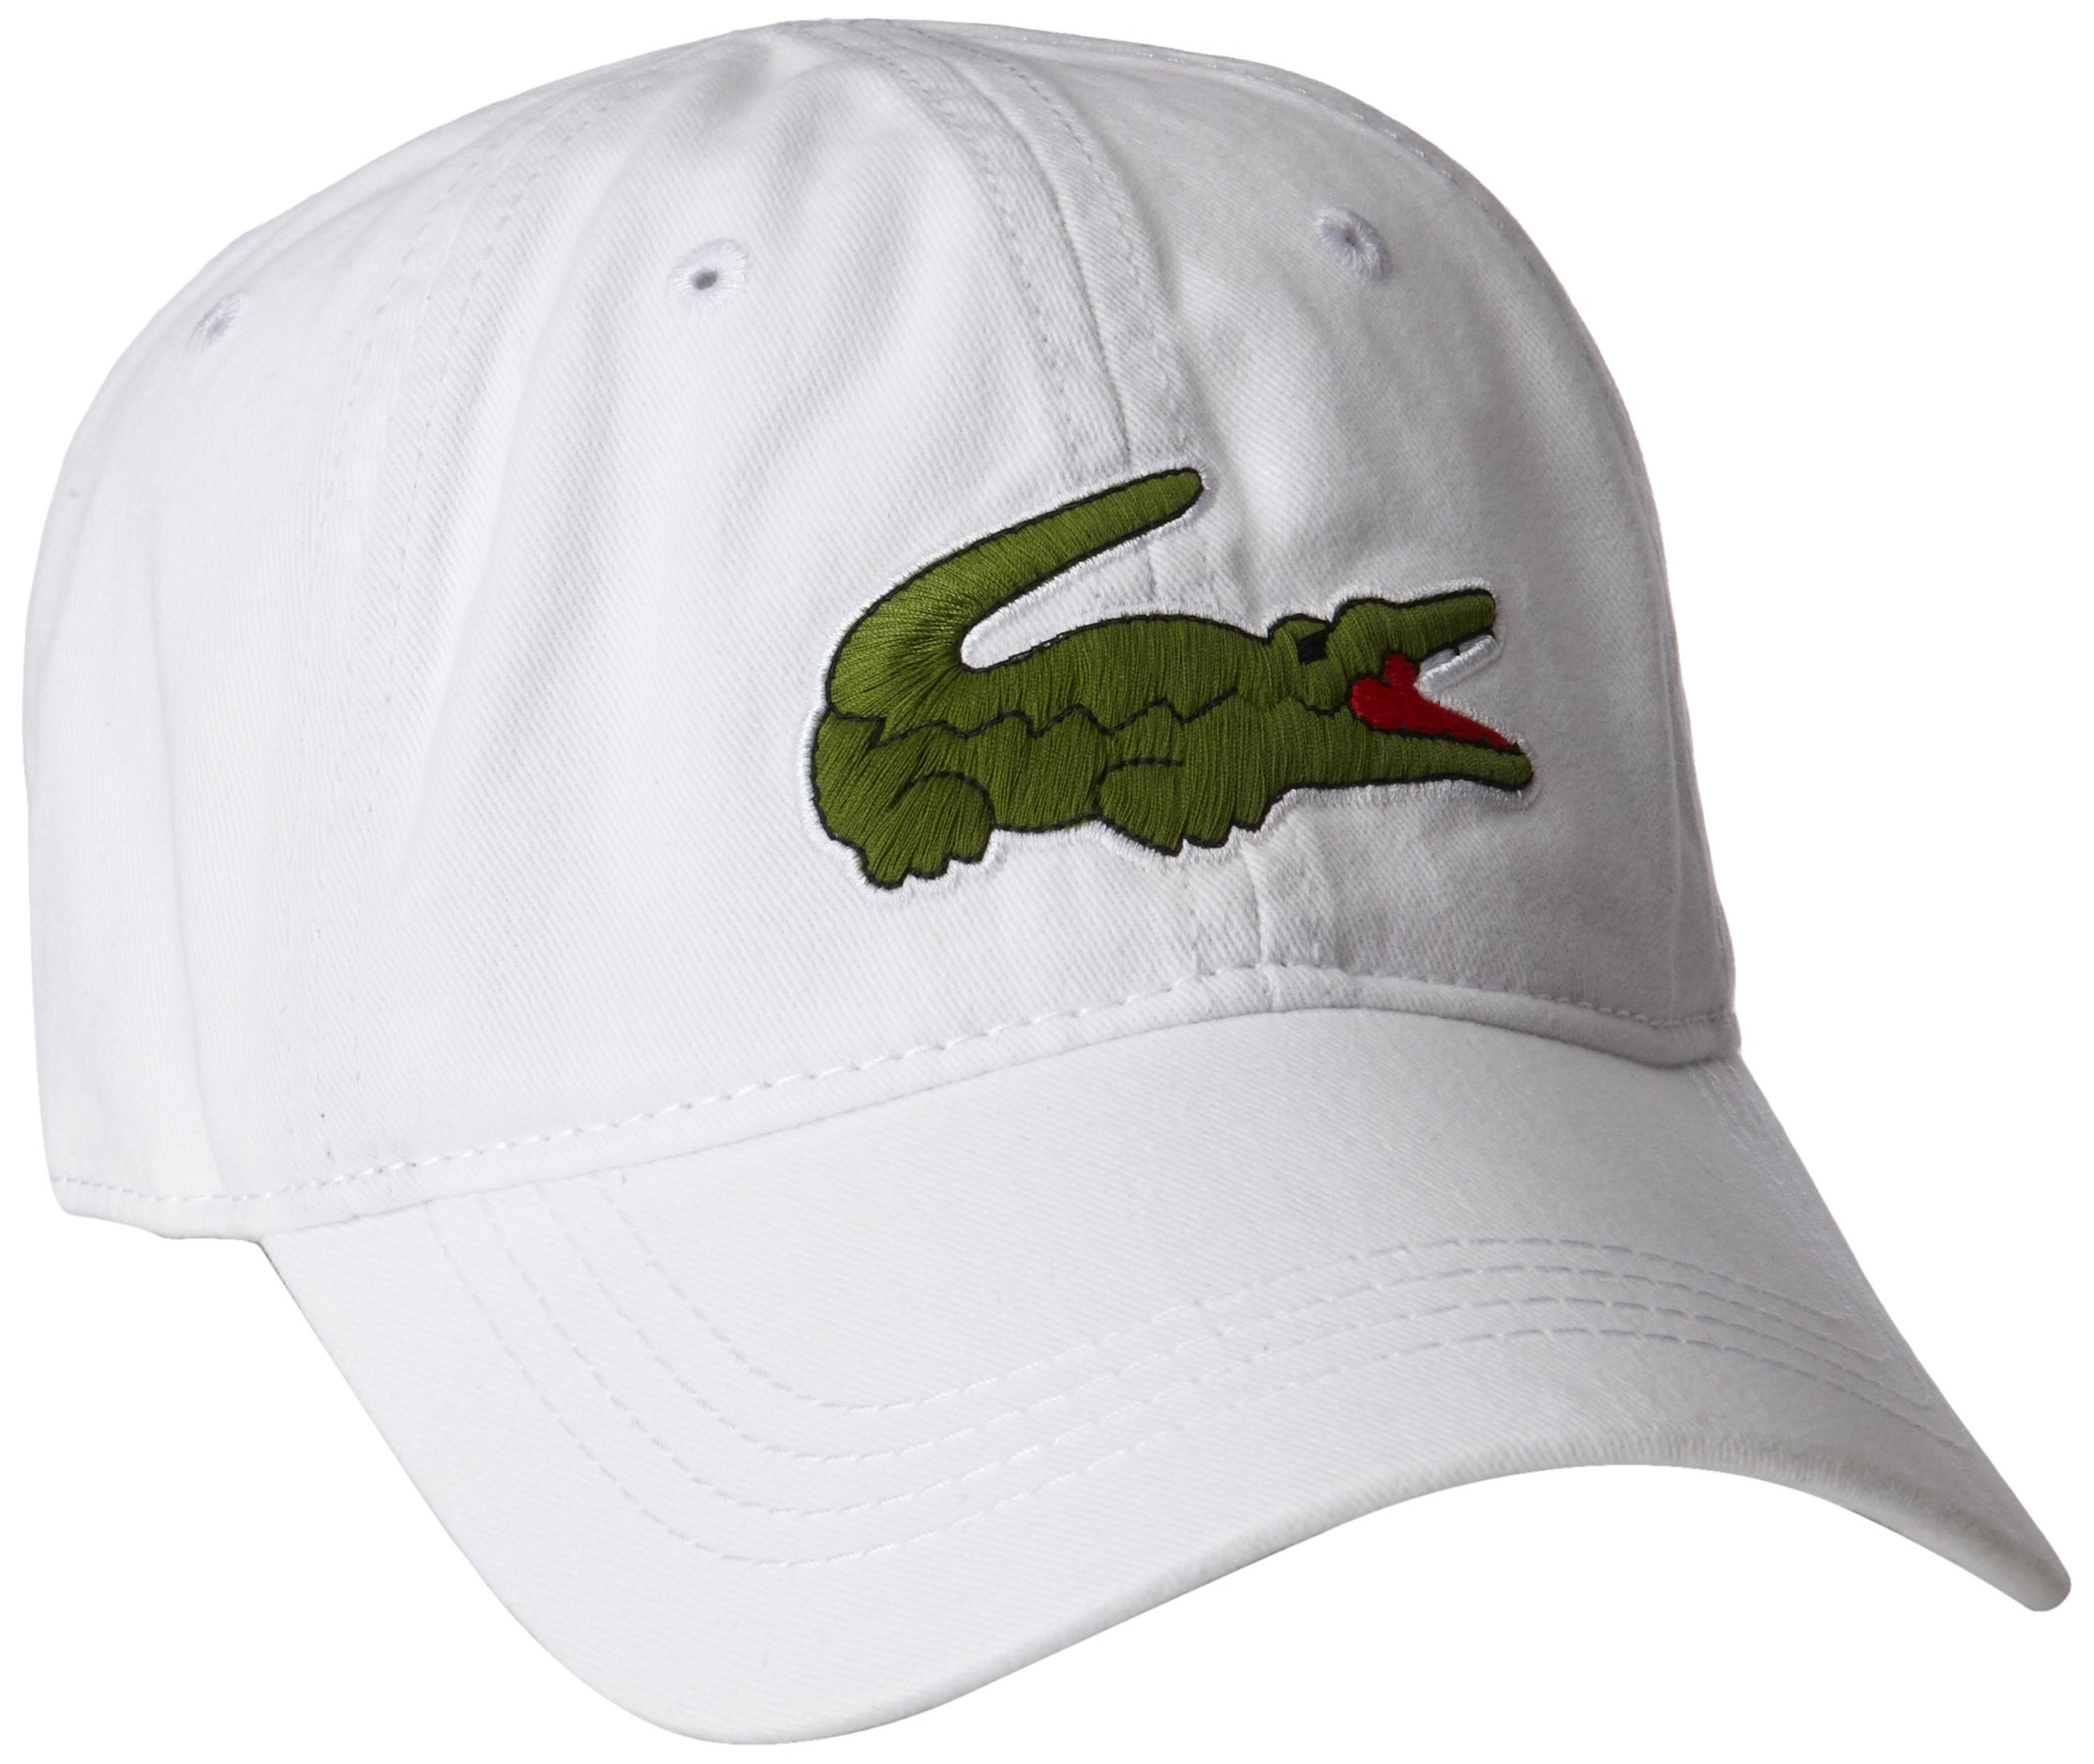 80ea1bcd652 Lacoste Men s Gabardine Cap with Large Crocodile White One Size ...